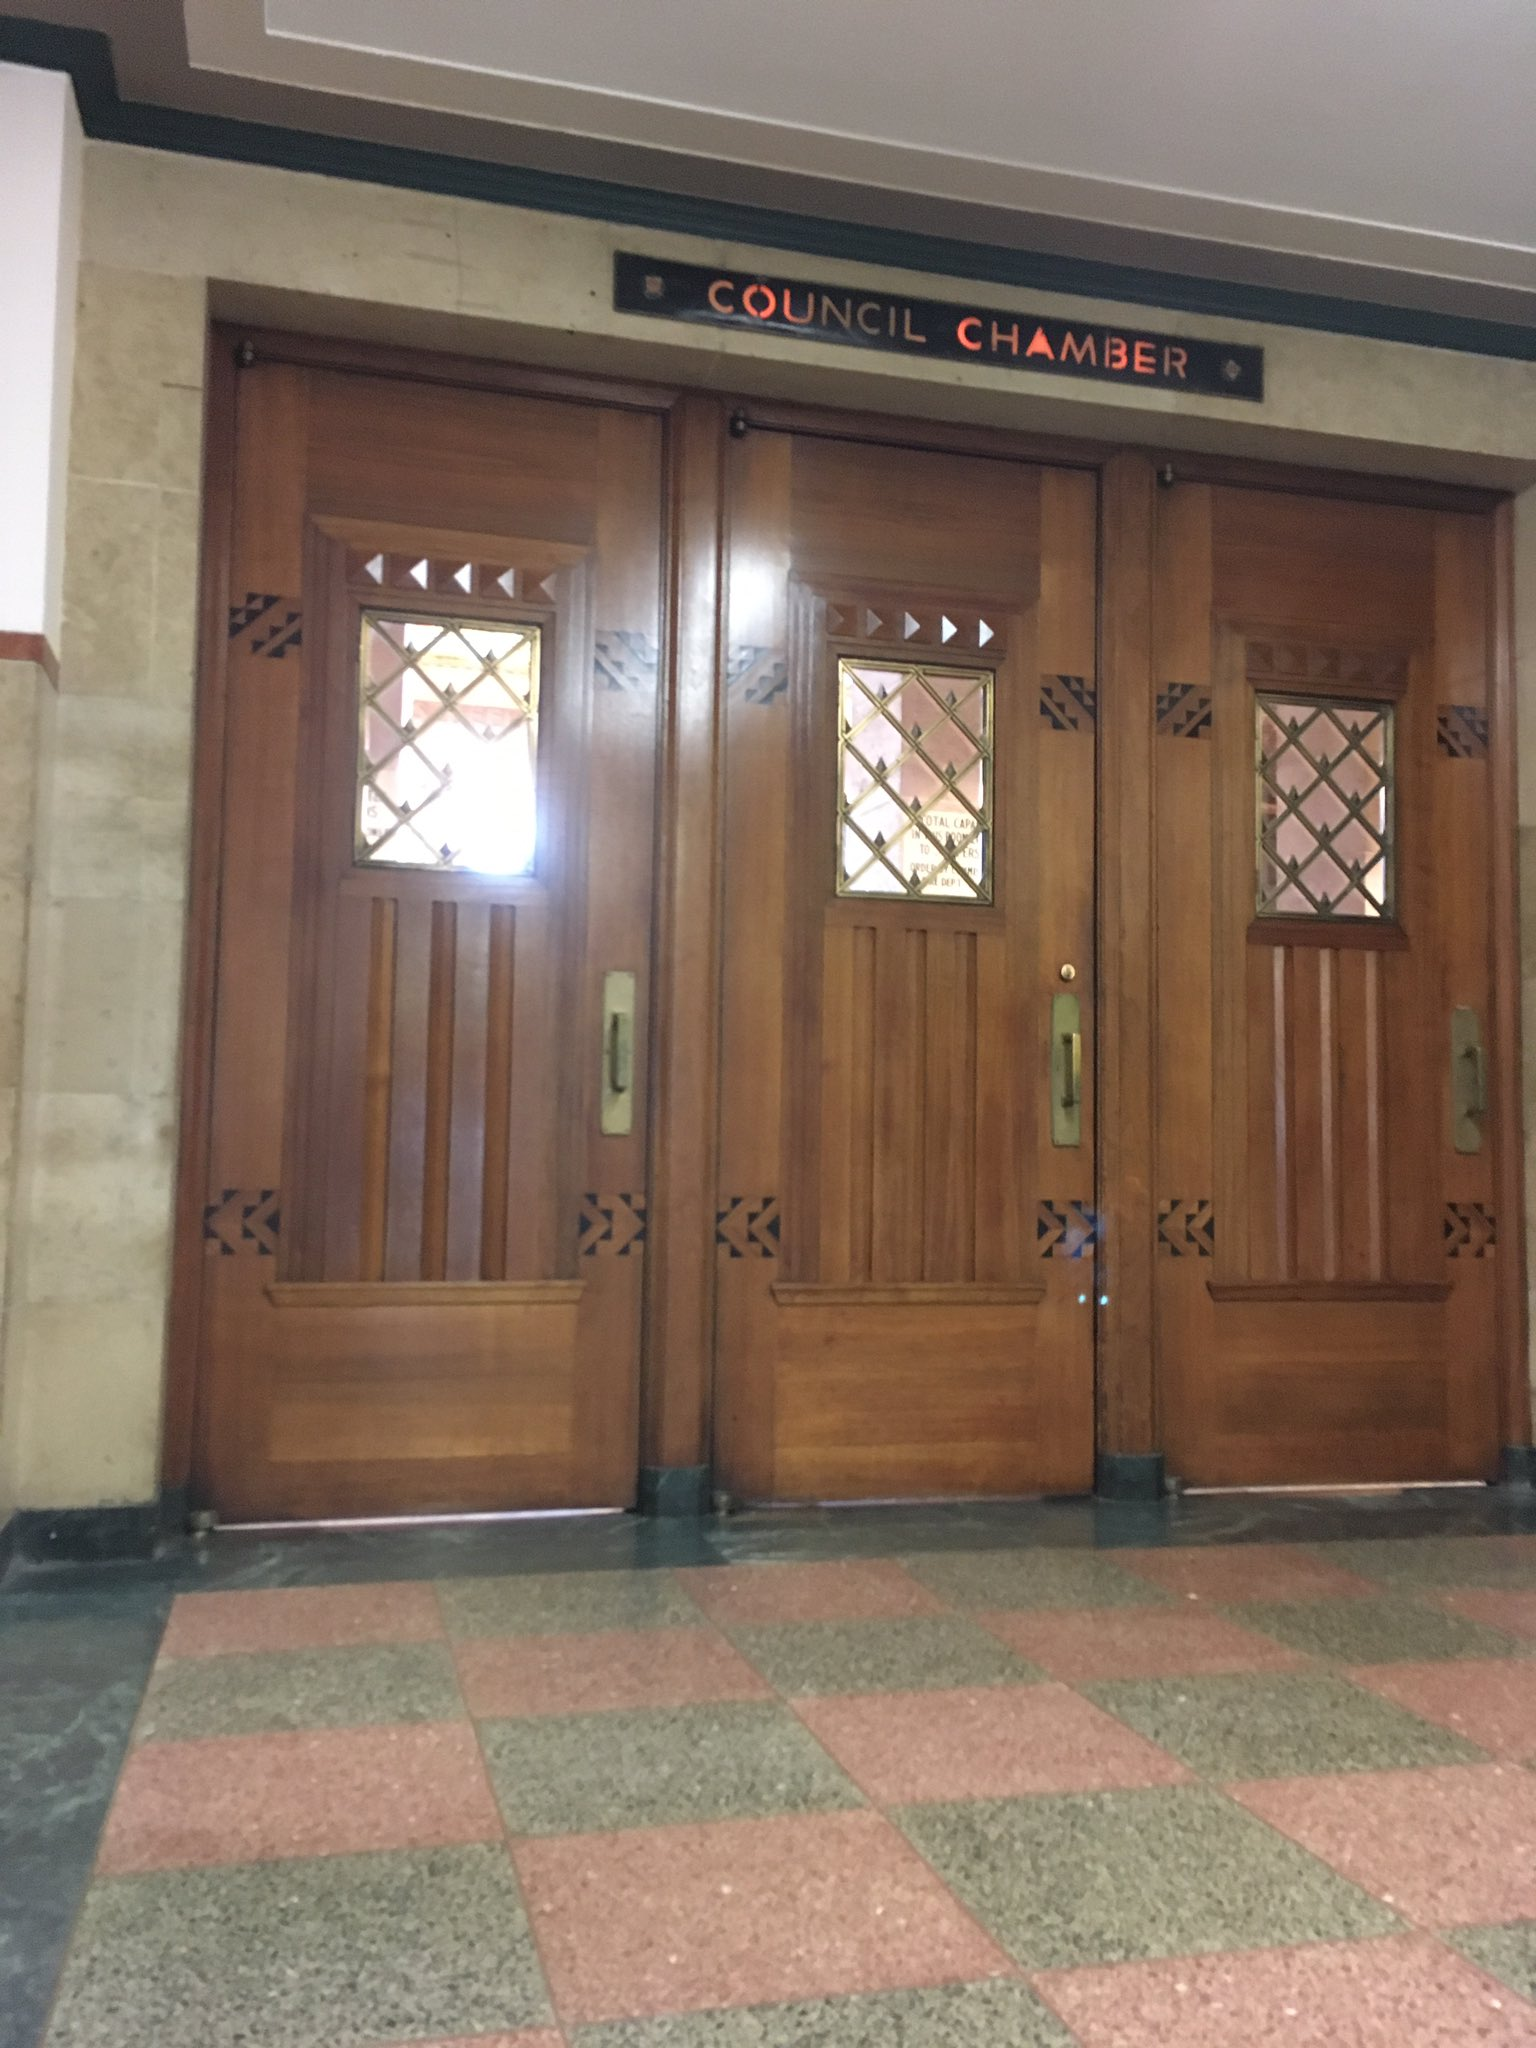 The Common Council Tuesday morning took up the issue of whether a former city exterminator was abusing sick time when working a second city job, but on the advice of city attorneys closed their meeting to the public and went into executive session. (Susan Schulman/Buffalo News)